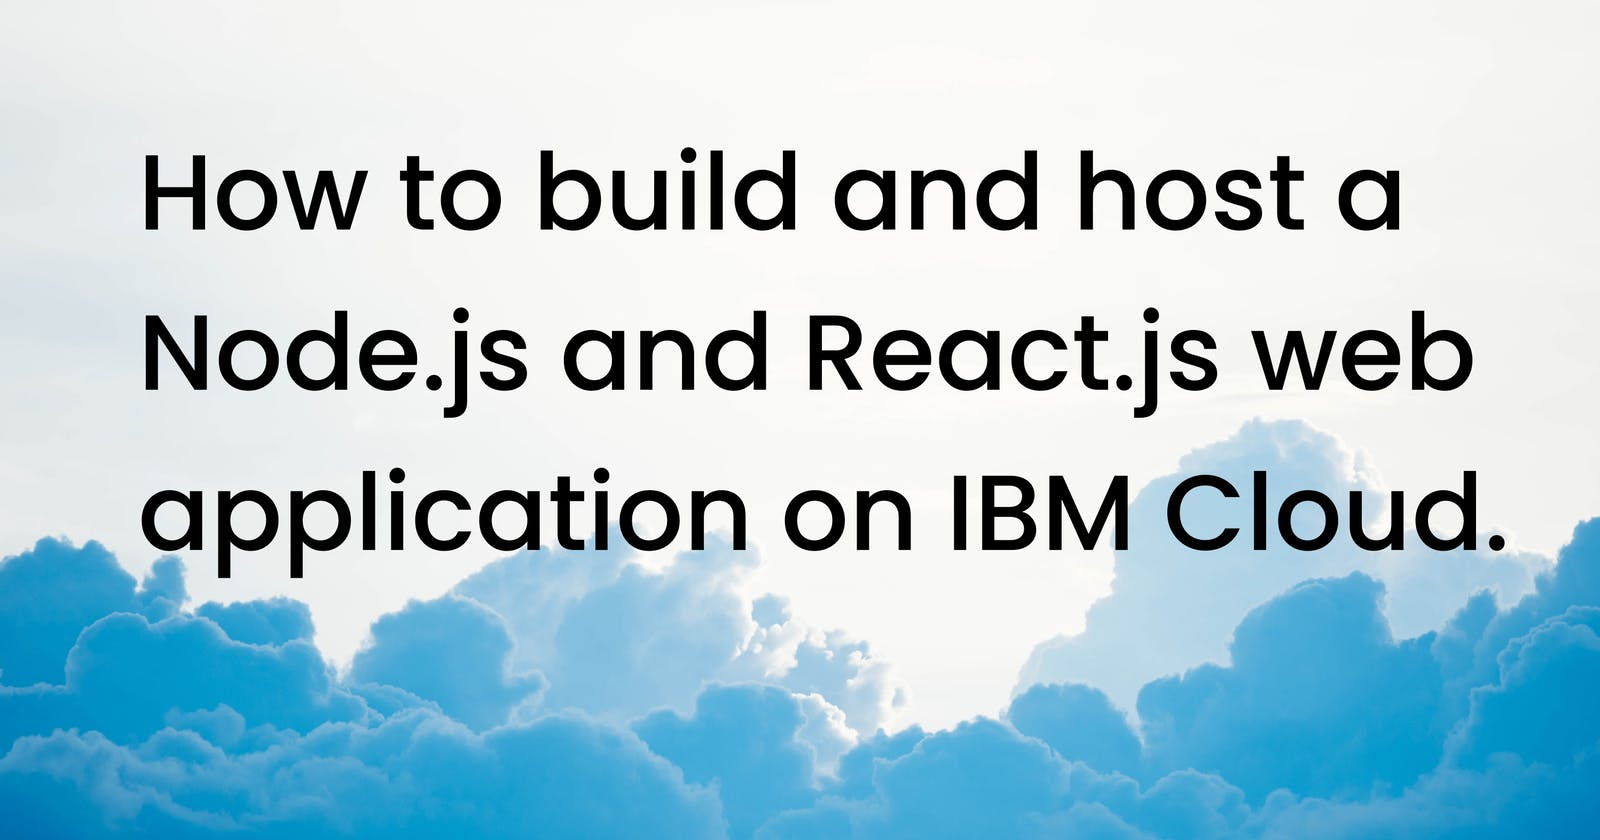 How to build and host a Node.js and React.js web application on IBM Cloud?